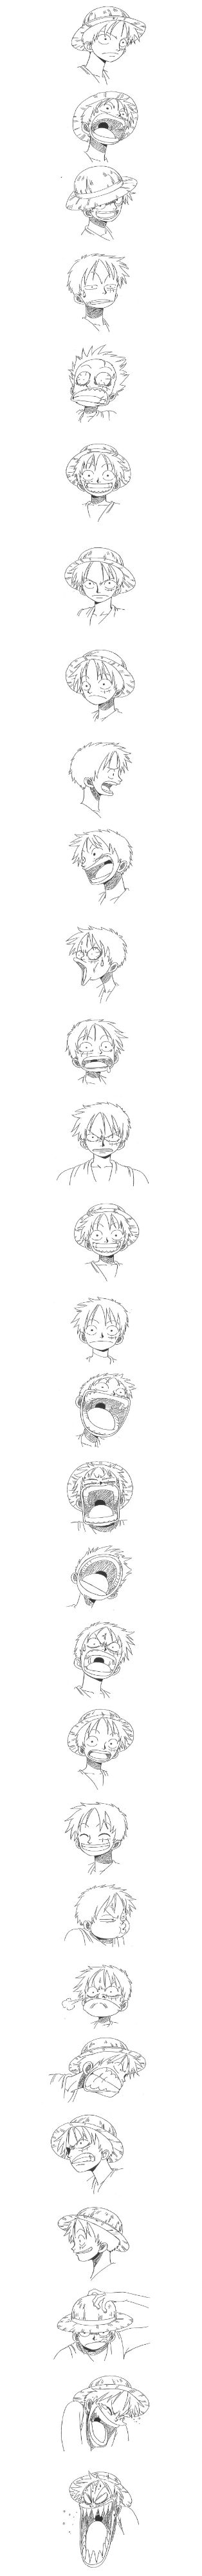 The many faces of One Piece's Monkey D. Luffy